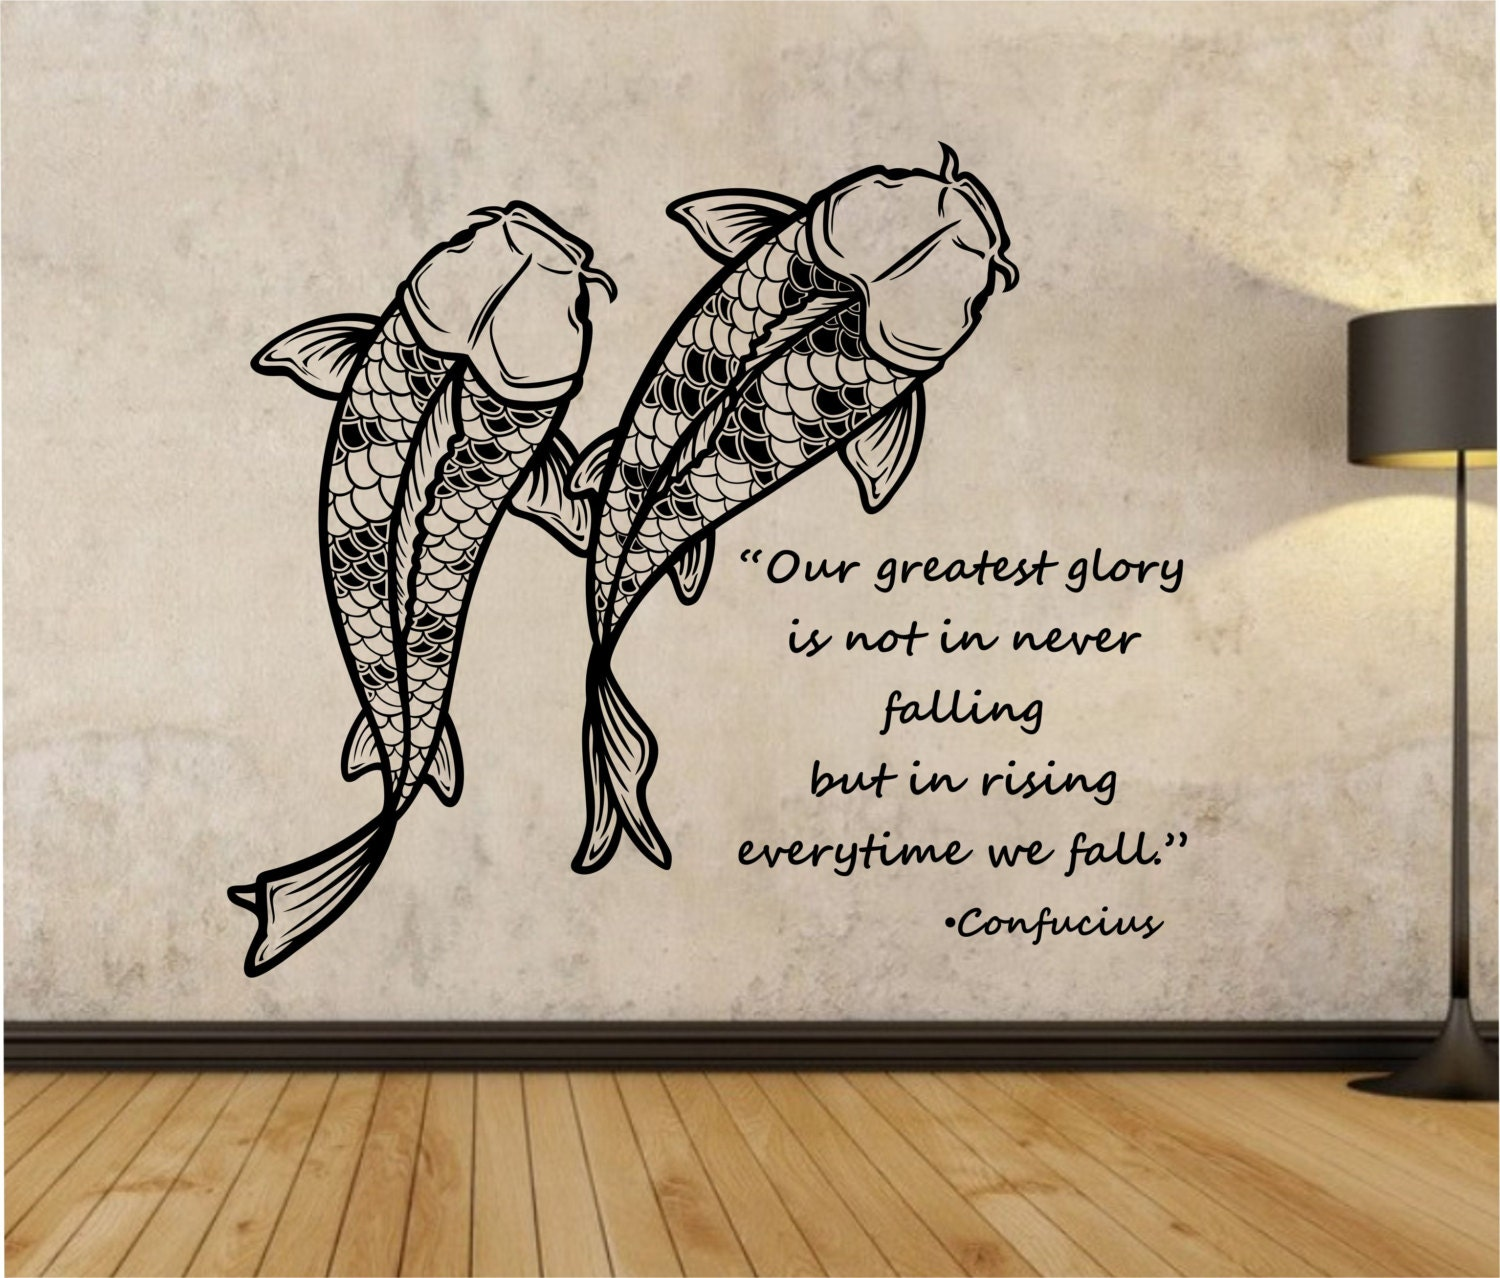 koi fish wall decal confucius quote sticker art decor bedroom